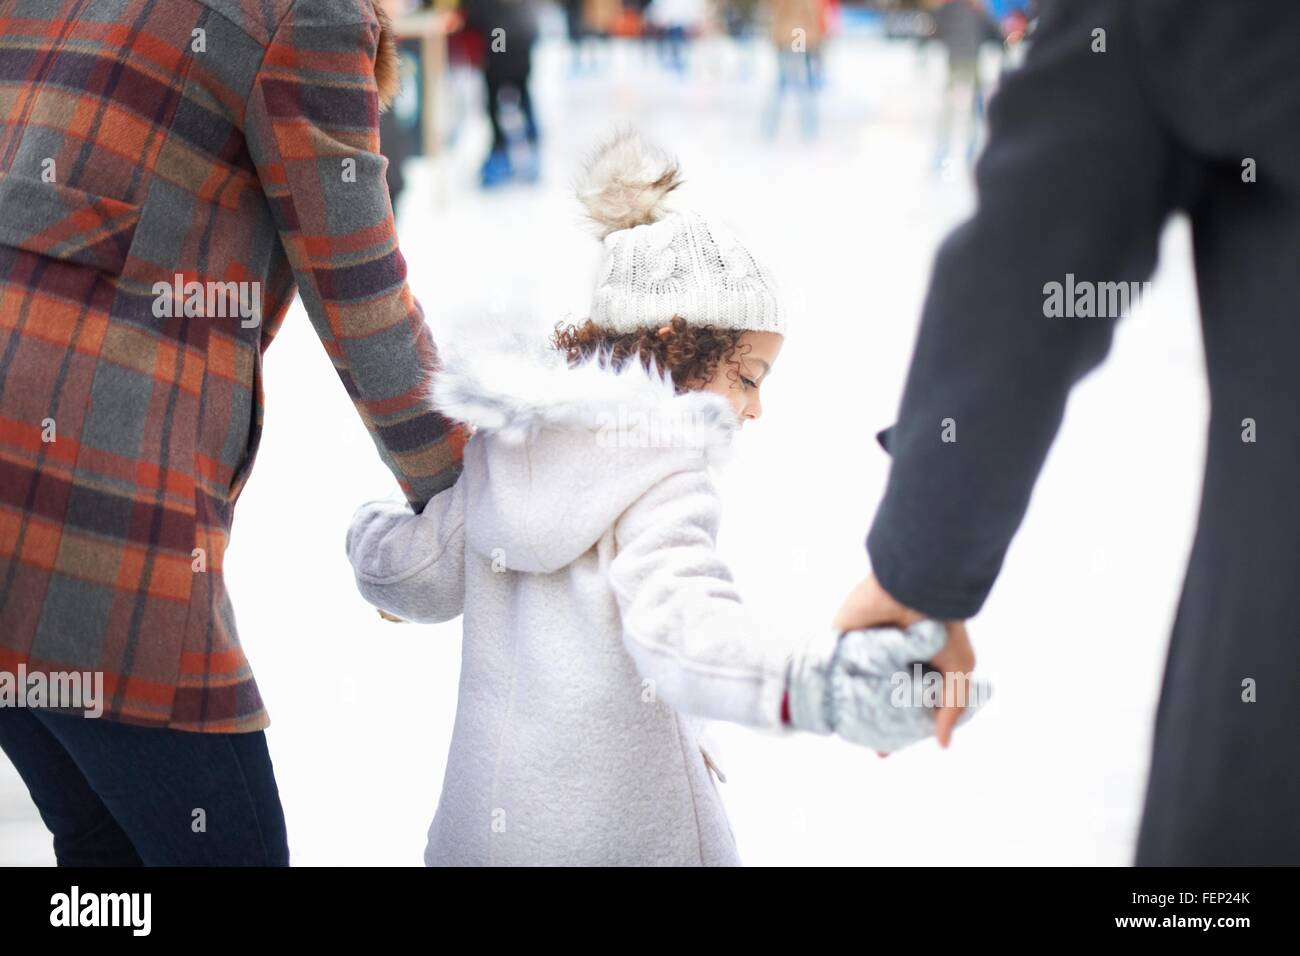 Rear view of girl ice skating with parents, holding hands - Stock Image